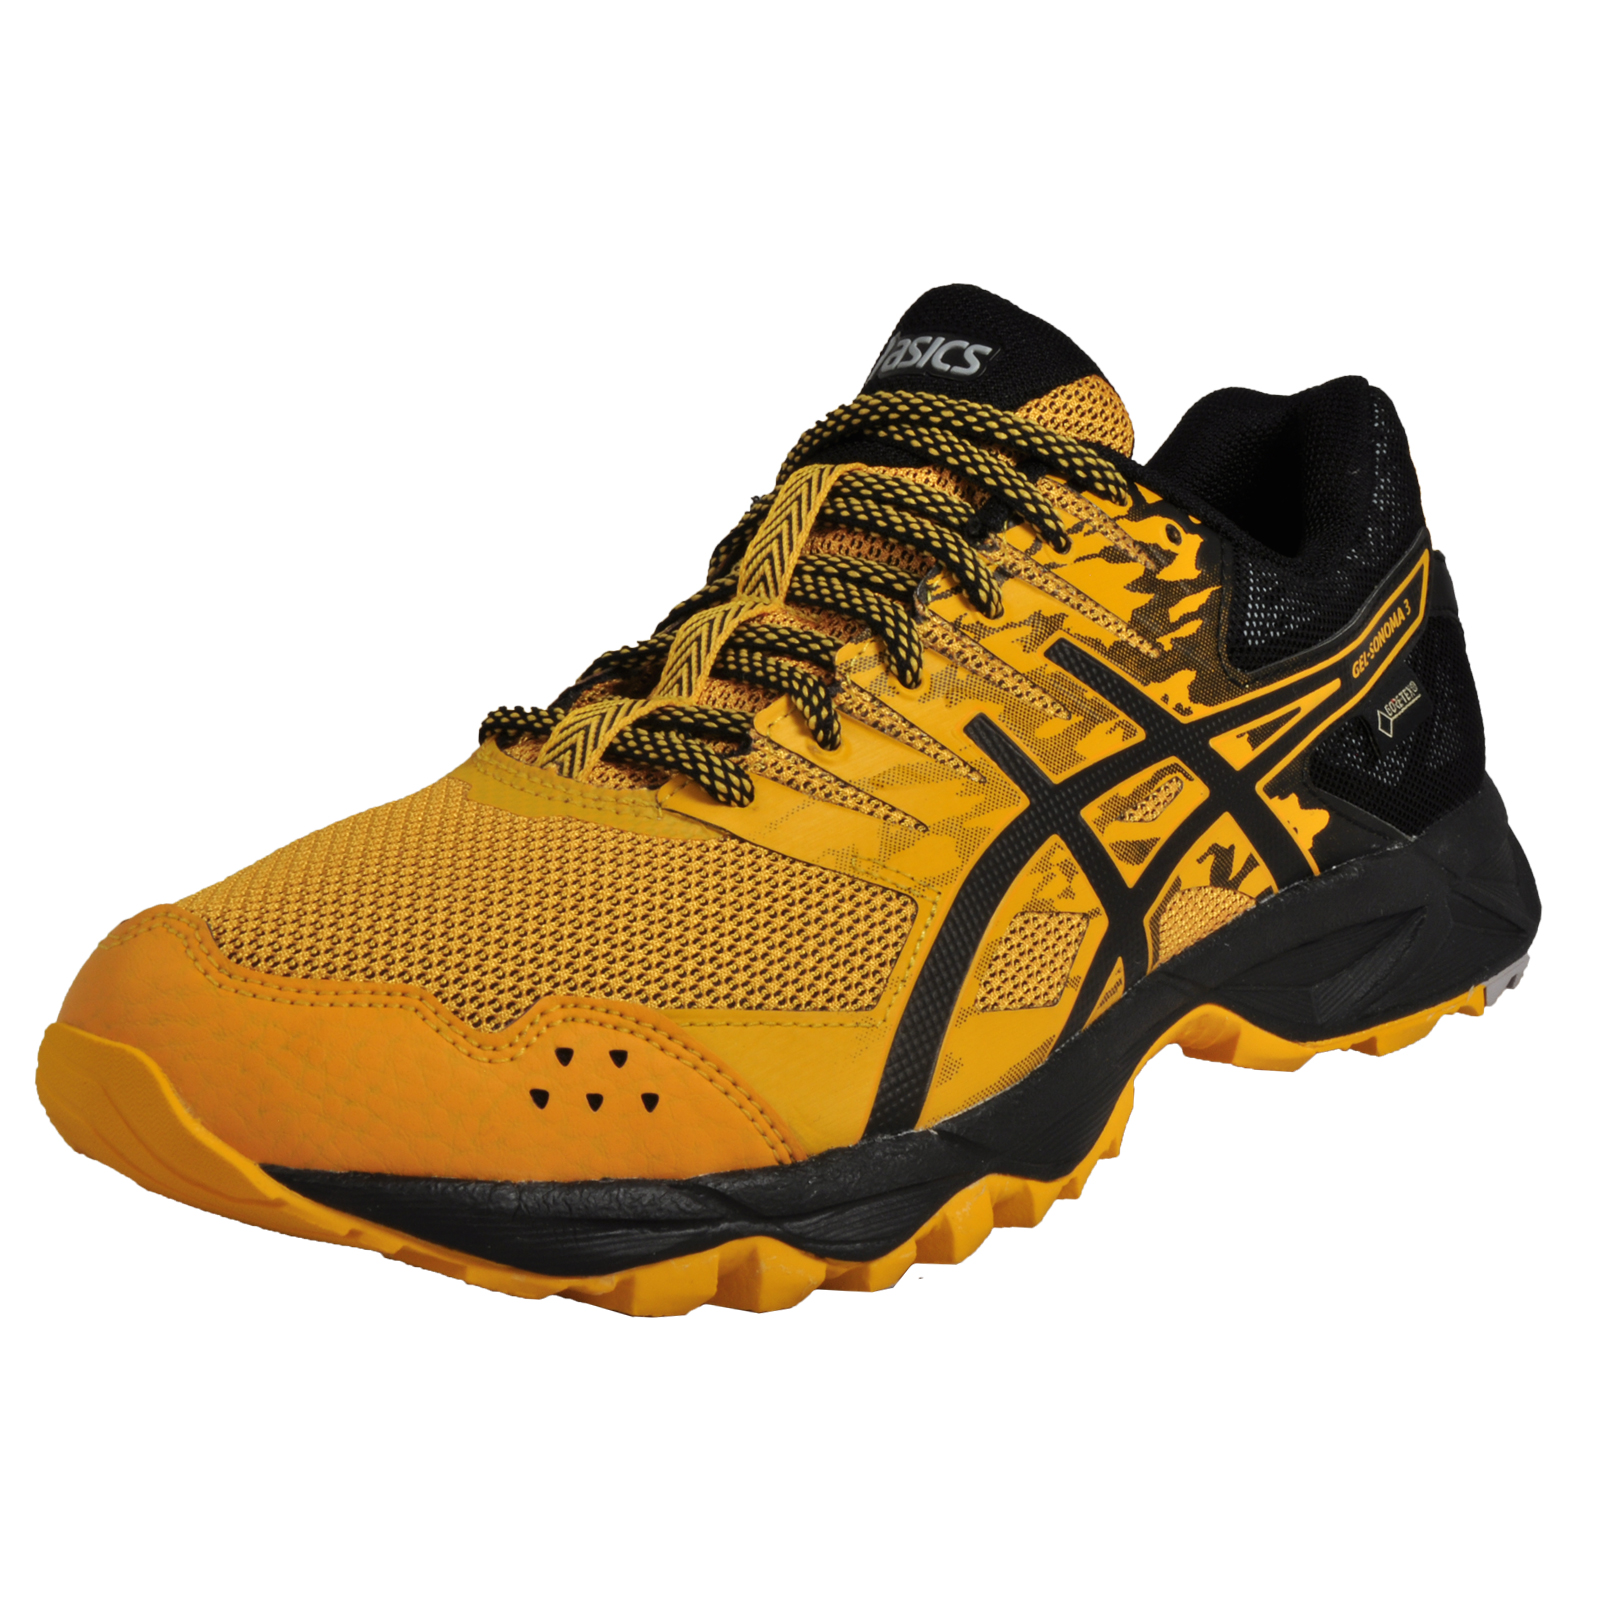 Asics Gel Sonoma 3 GT-X Gore-Tex Mens Waterproof All Terrain Trail Running  Shoes Gold